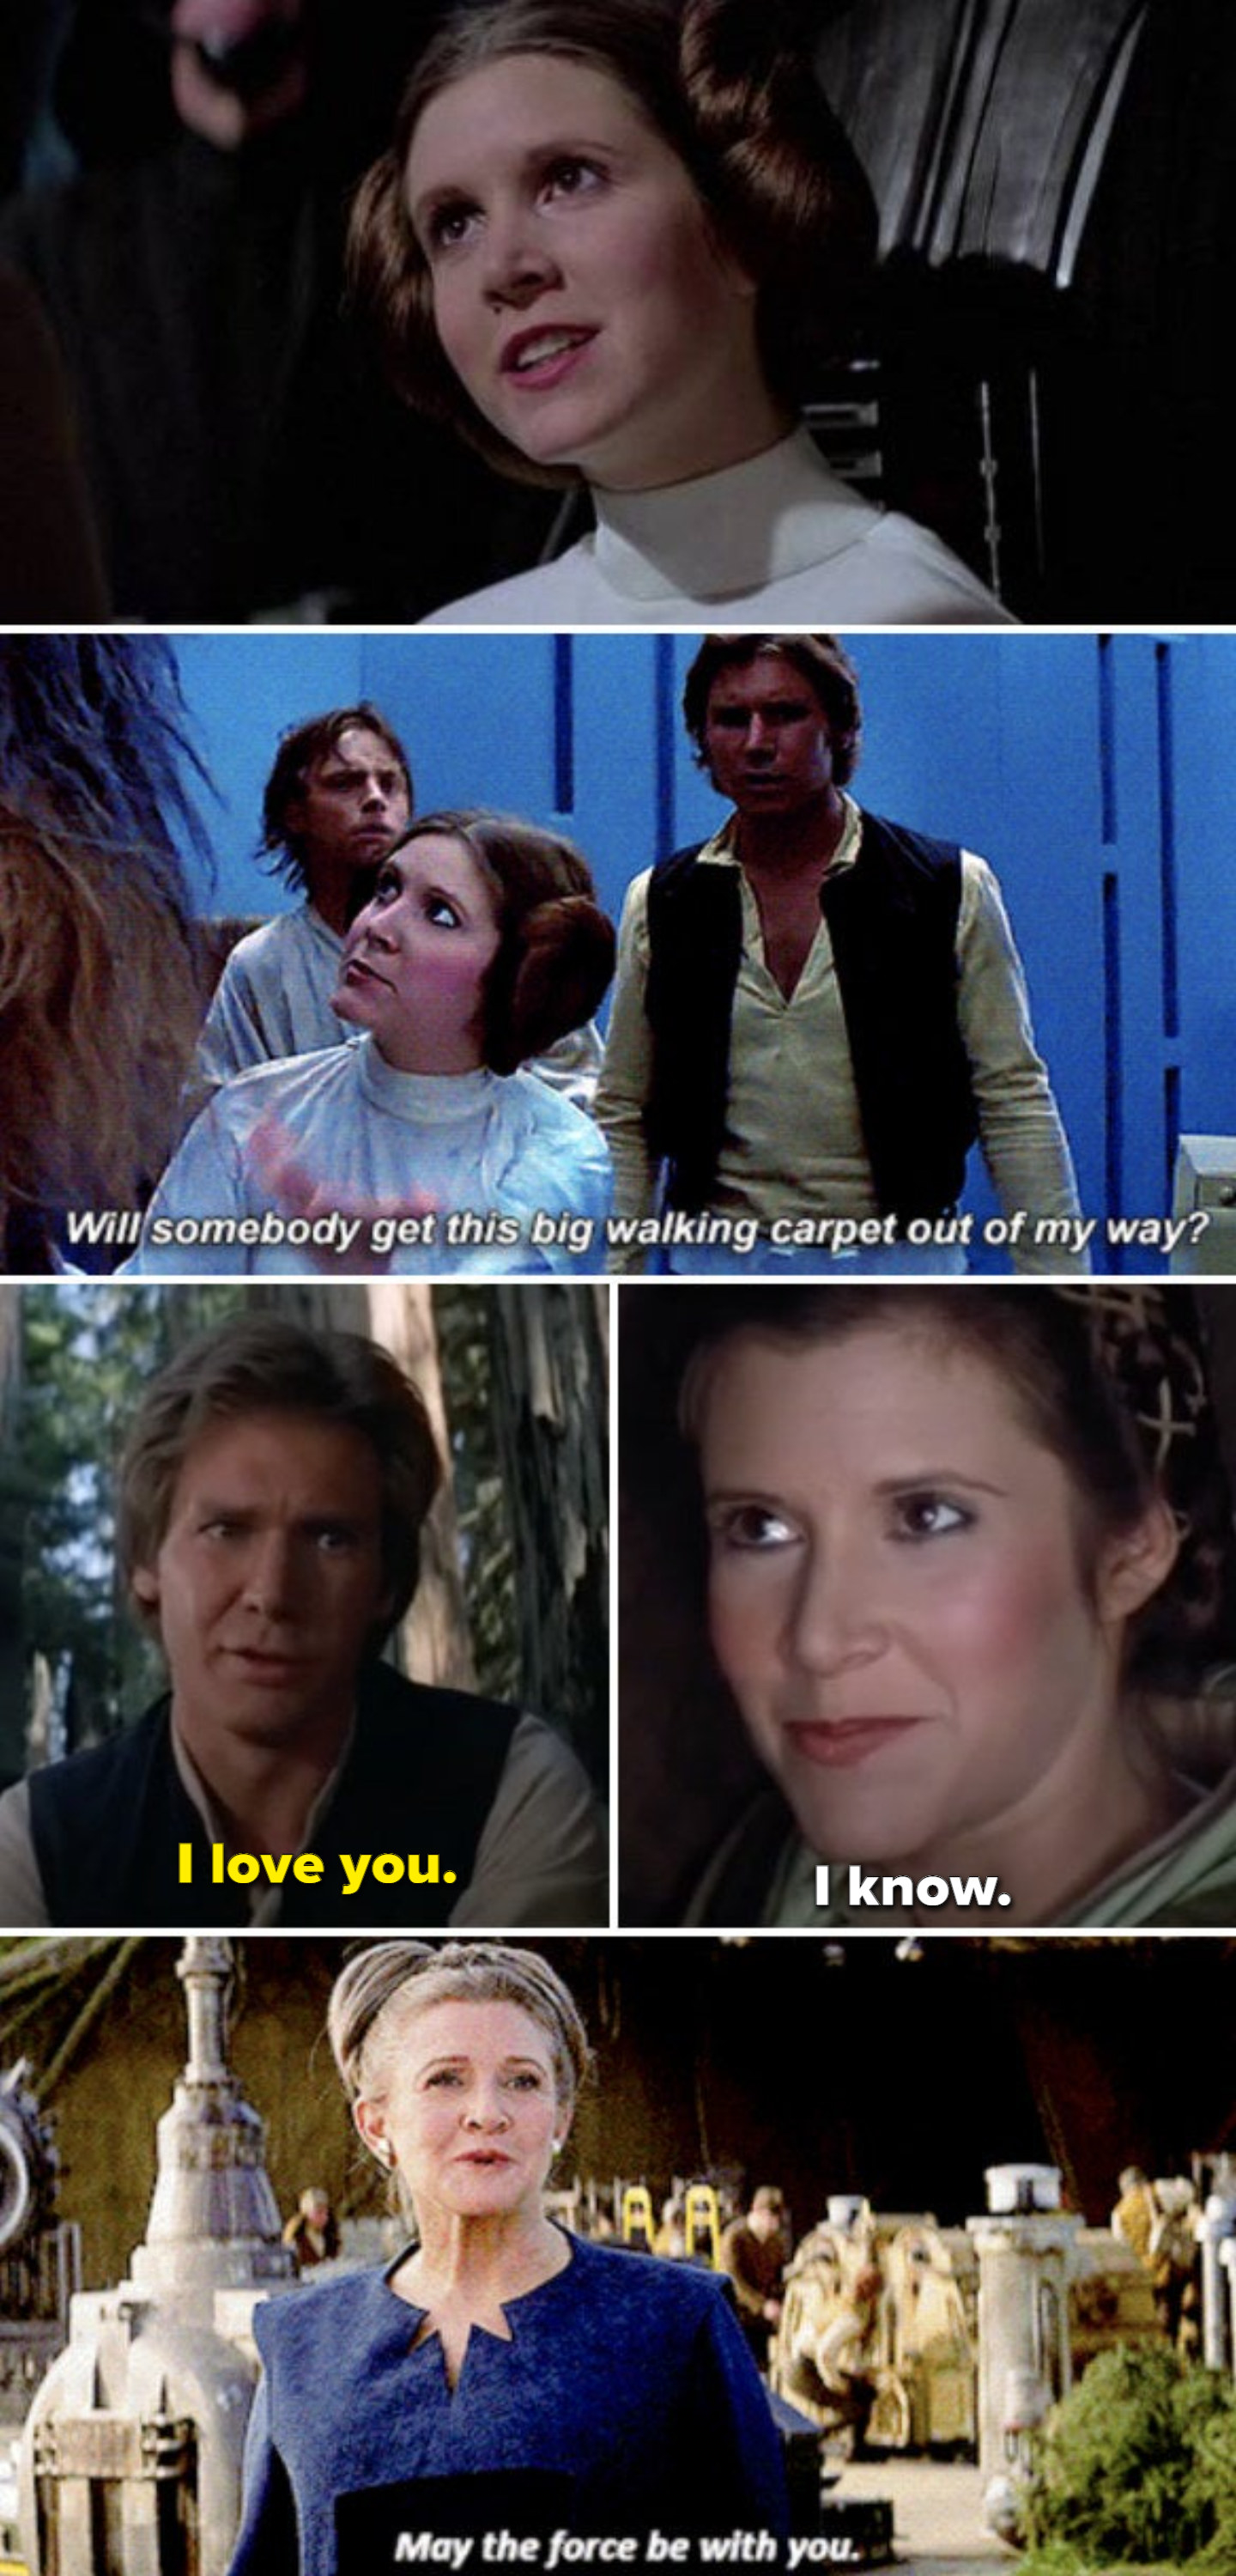 """Fisher in """"A New Hope,"""" saying: """"Will somebody get this big walking carpet out of my way?;"""" Fisher in Return of the Jedi with Harrison Ford, saying """"I love you; I know;"""" Fisher in """"The Force Awakens"""" saying, """"May the force be with you"""""""